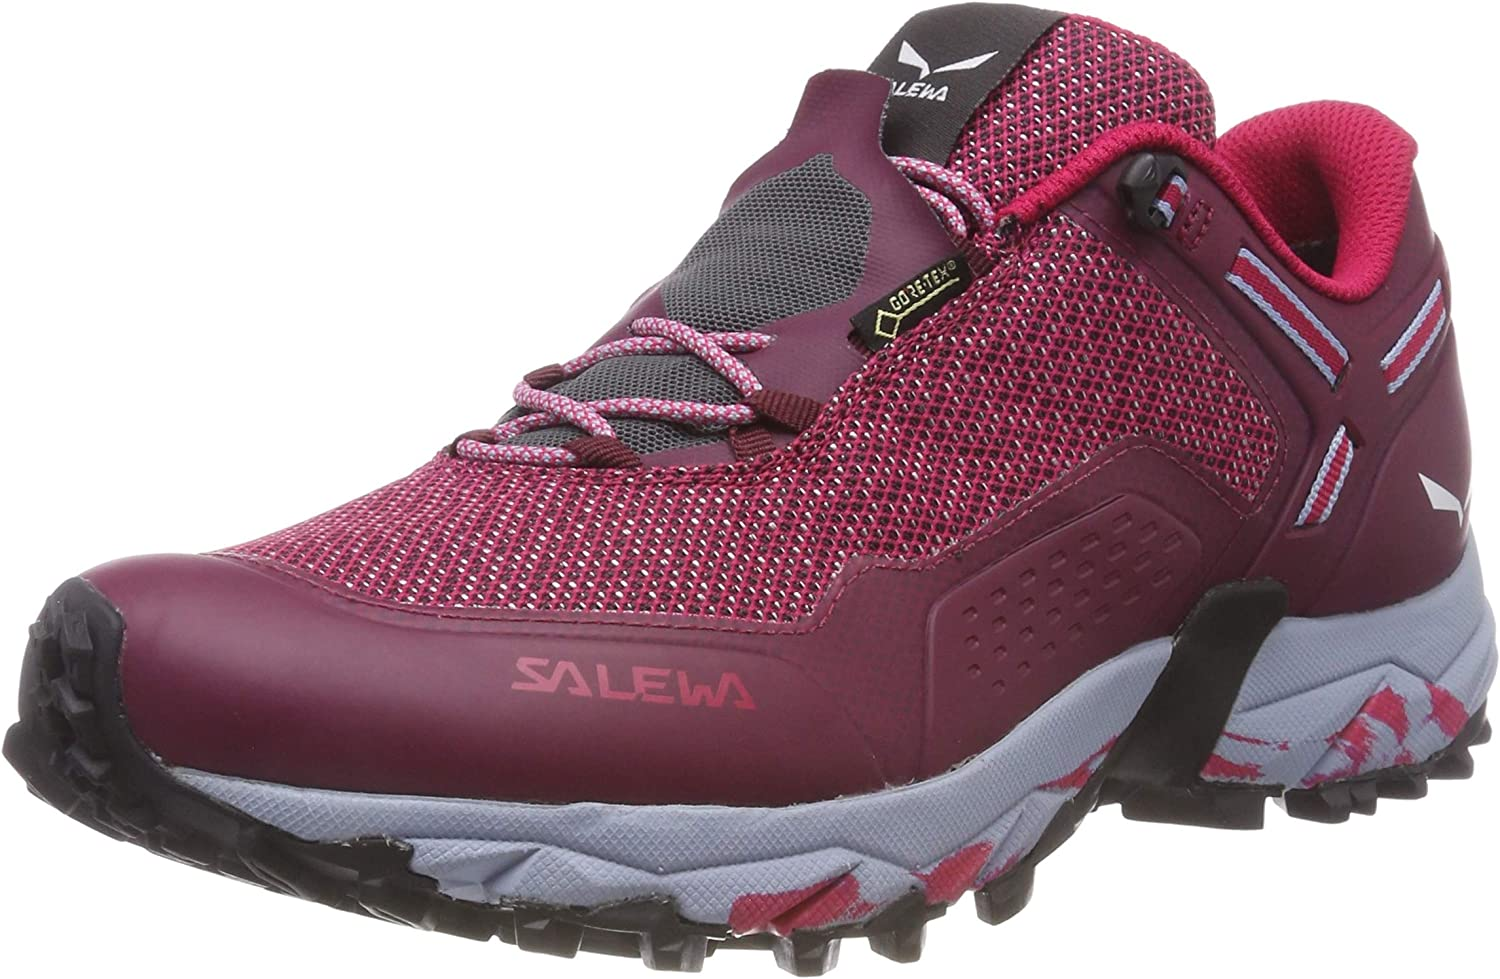 Salewa Women s High Rise Hiking Shoes Low, Red Red Plum Rose Red 6896, Women 2